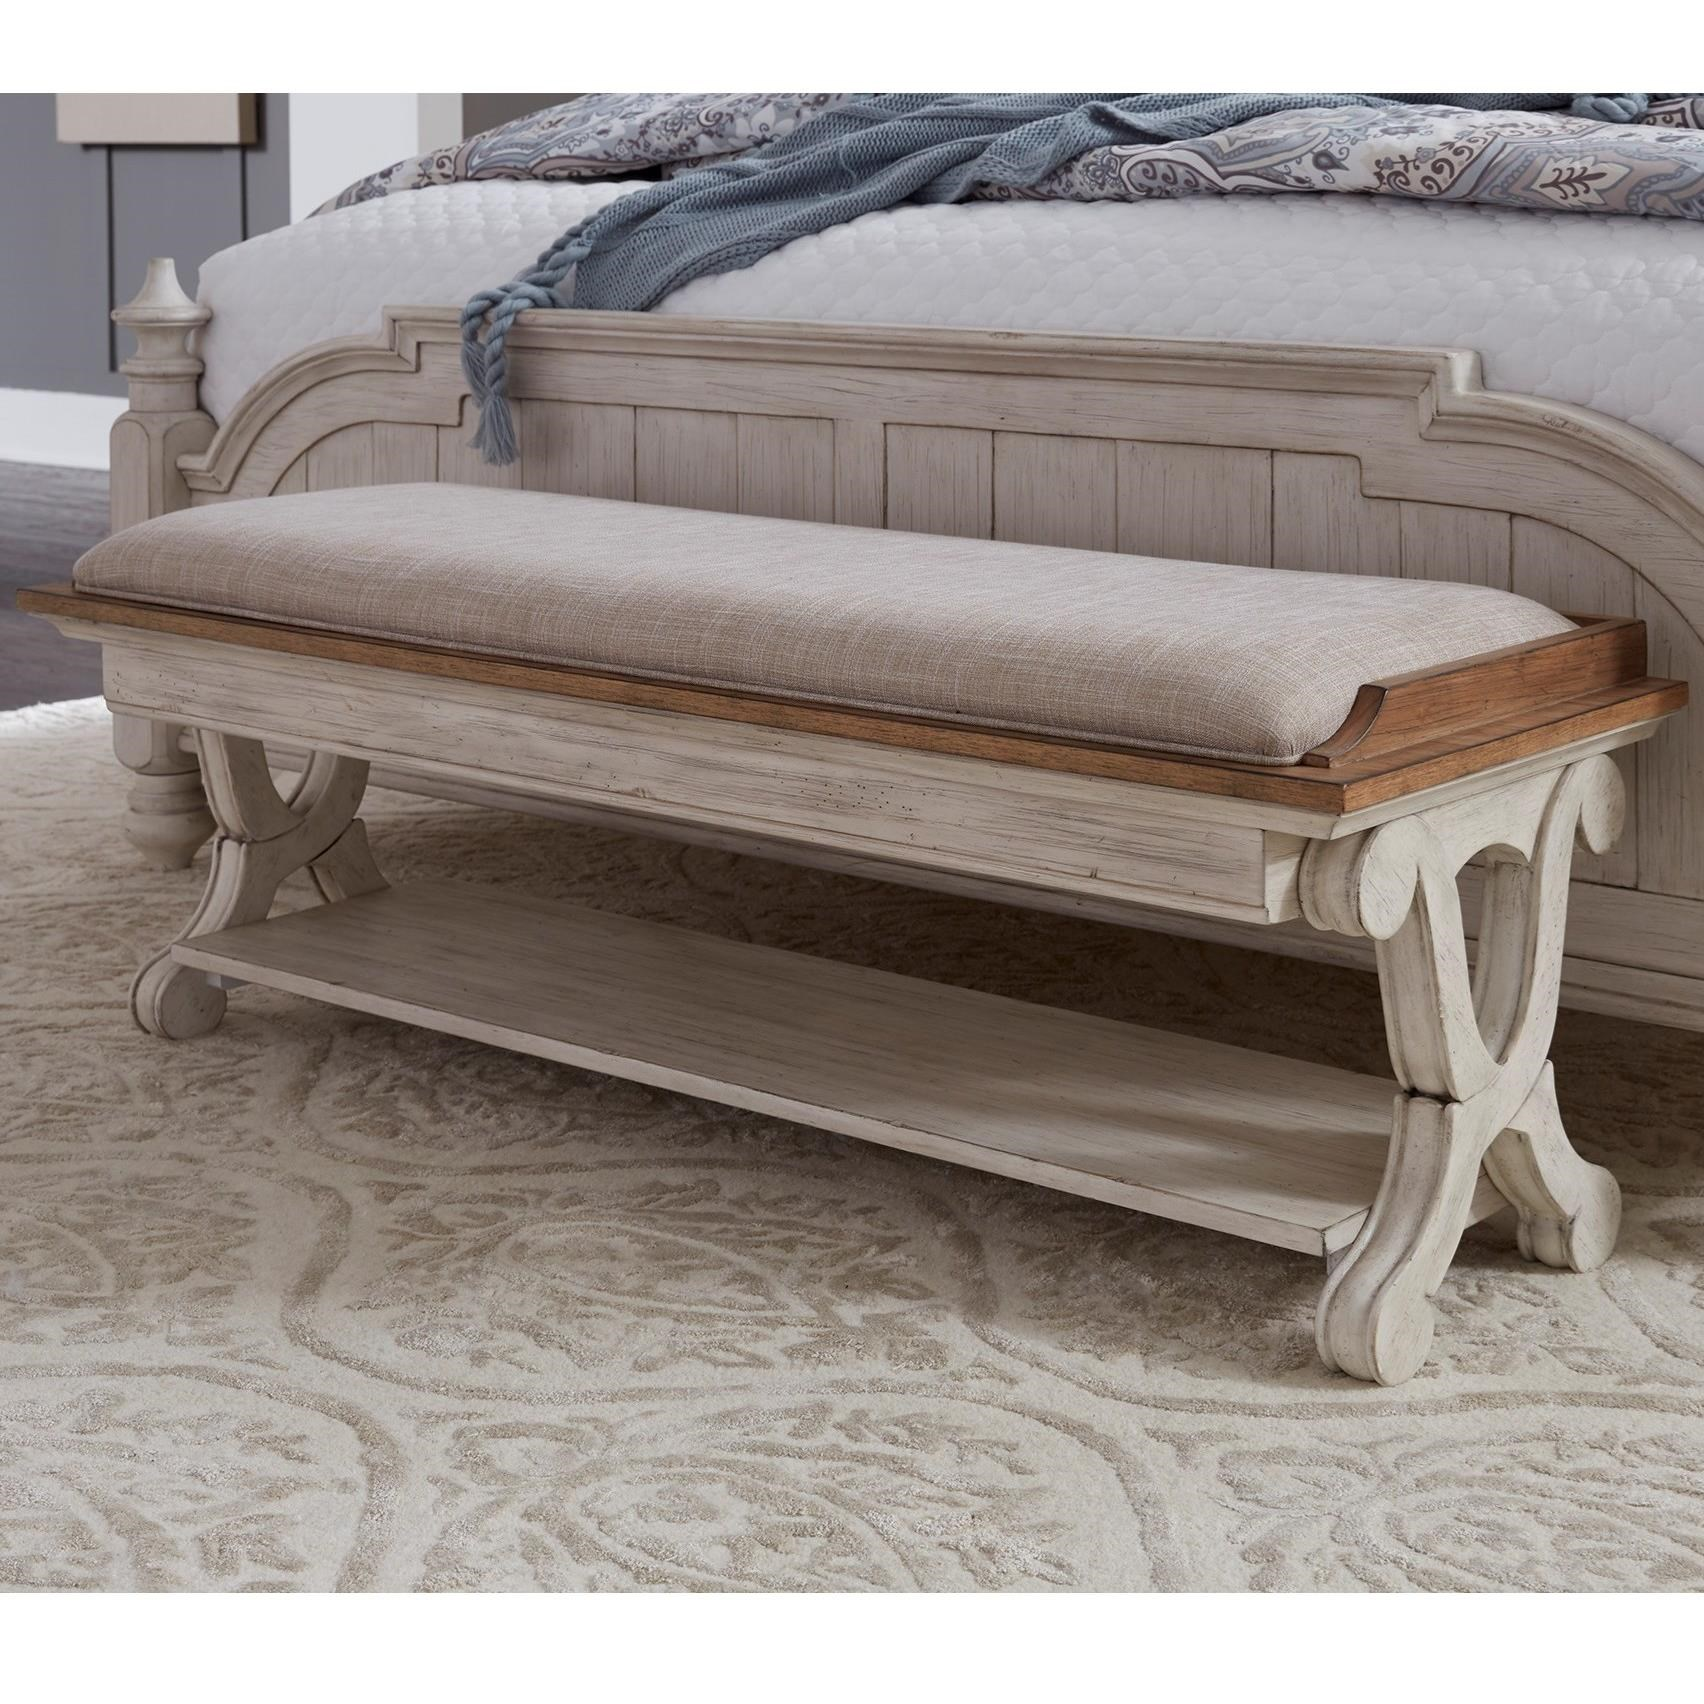 Farmhouse Reimagined Bed Bench by Liberty Furniture at Lapeer Furniture & Mattress Center